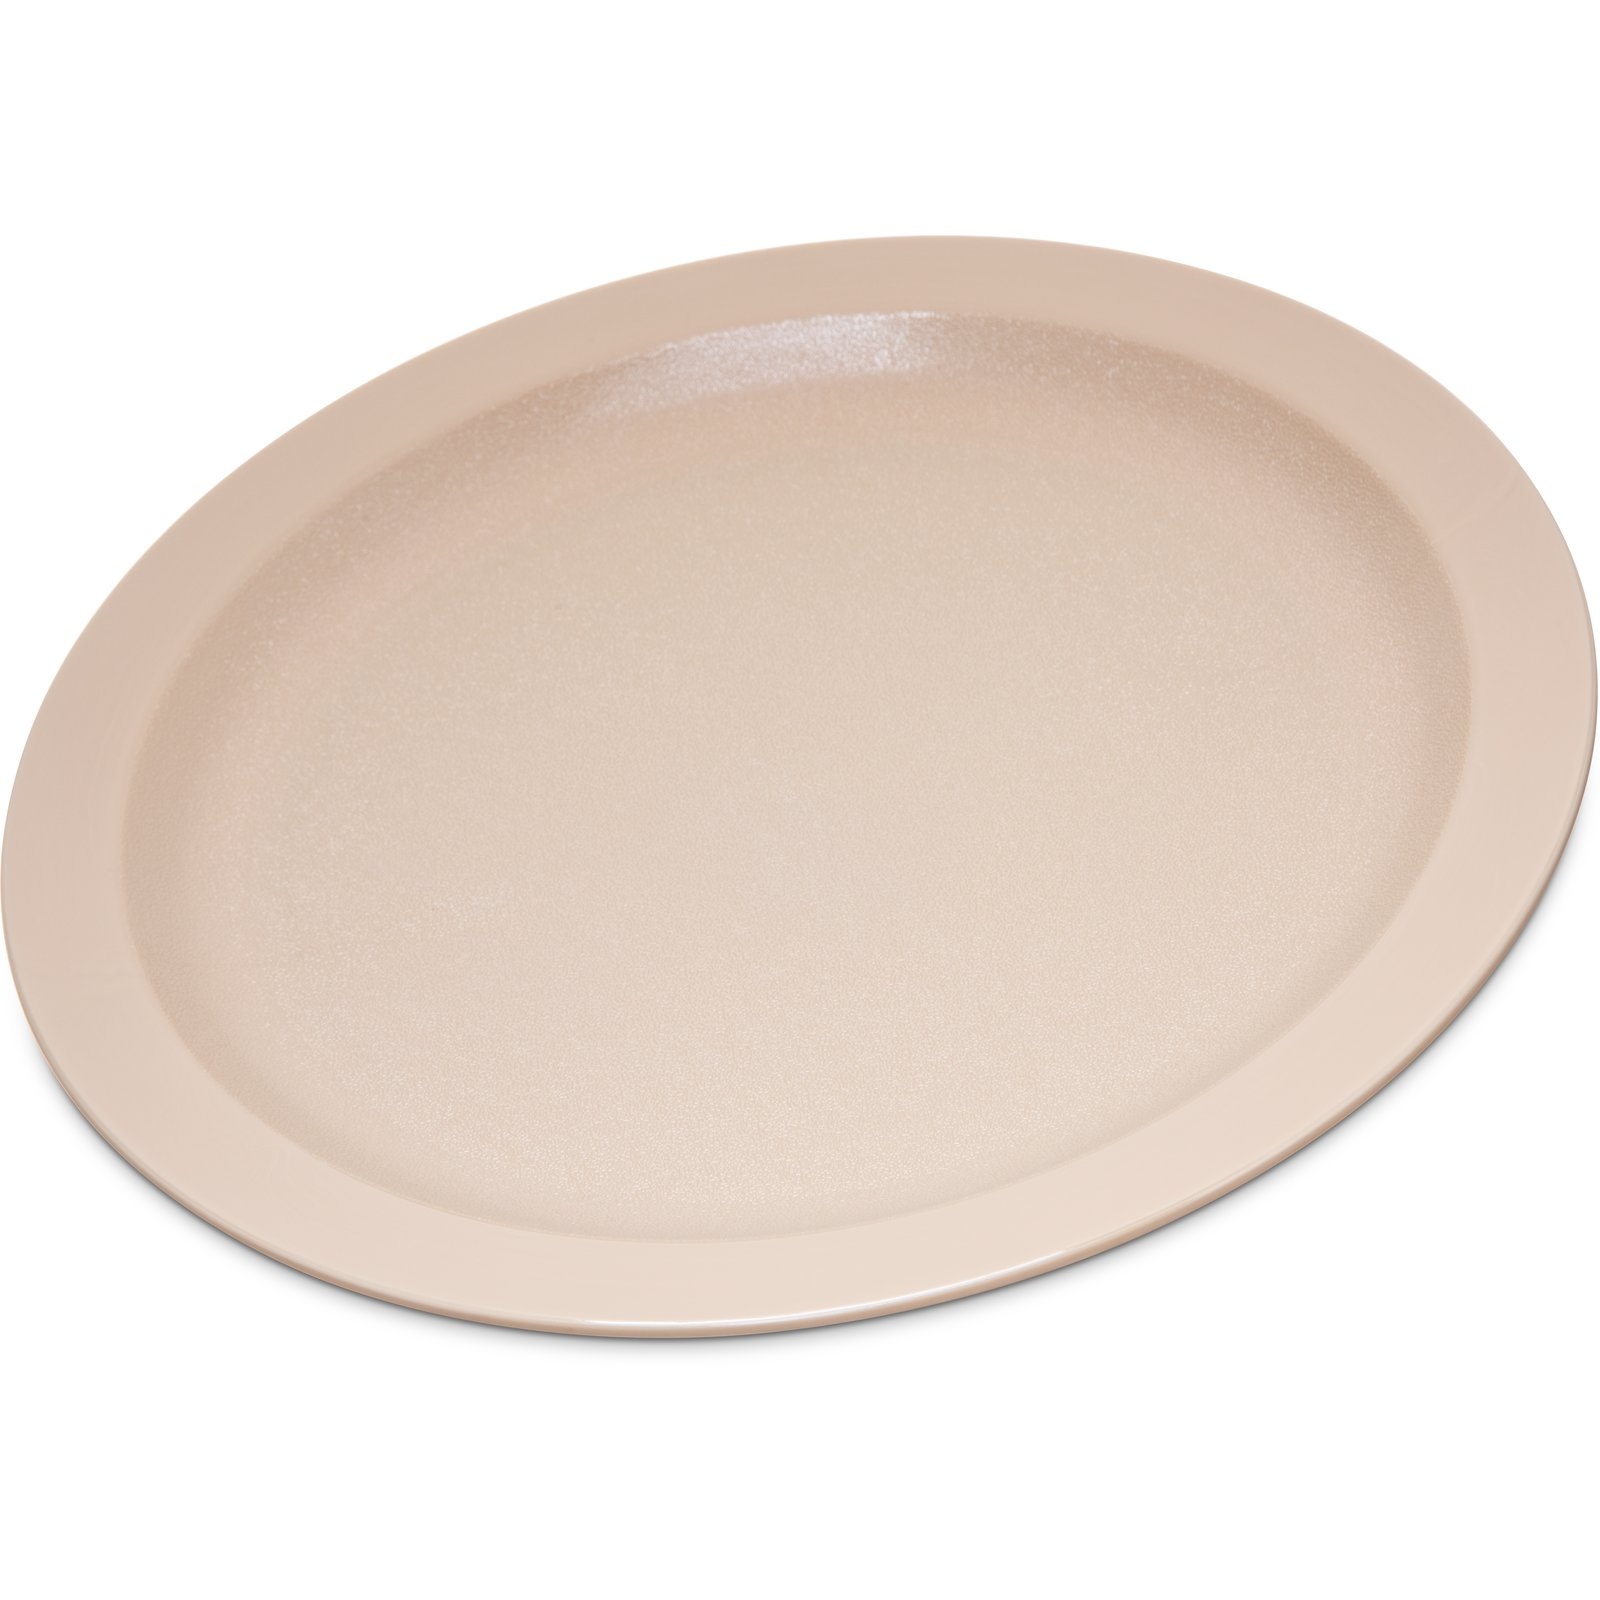 PCD21025 - Polycarbonate Narrow Rim Plate 10  - Tan  sc 1 st  Carlisle FoodService Products & PCD21025 - Polycarbonate Narrow Rim Plate 10